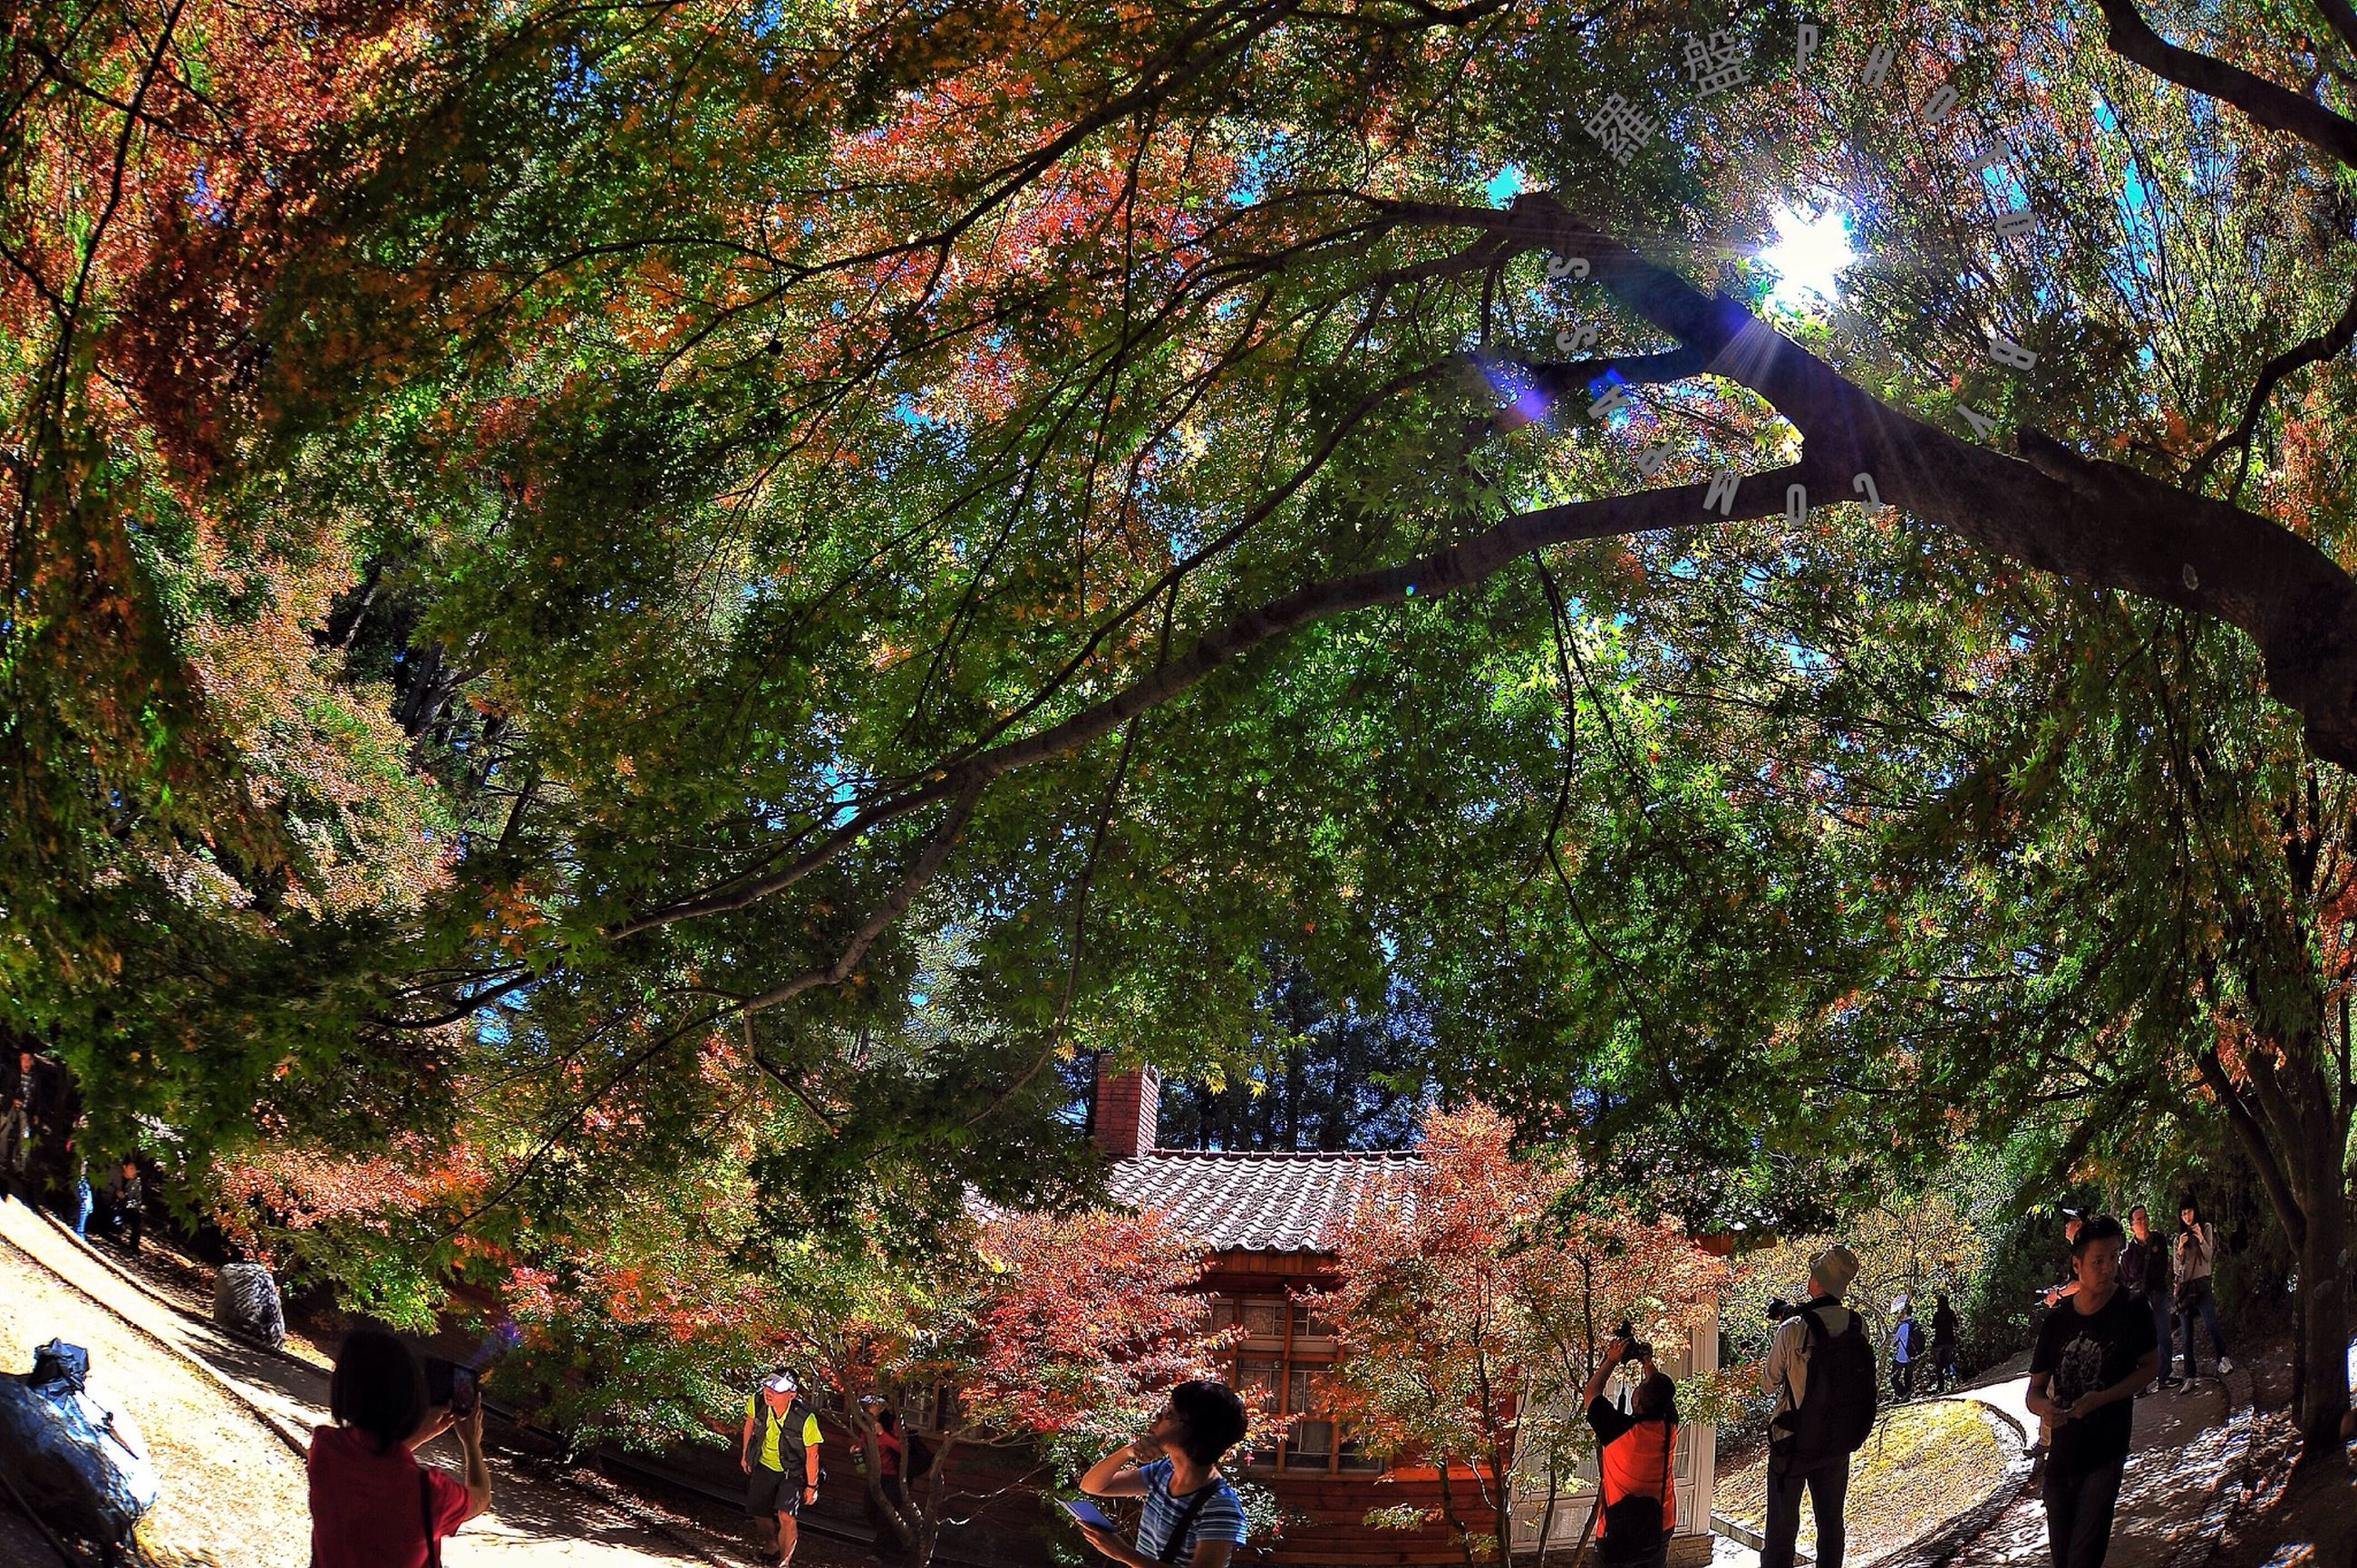 tree, low angle view, branch, growth, lifestyles, sunlight, leisure activity, men, tree trunk, nature, day, large group of people, outdoors, person, green color, park - man made space, sky, beauty in nature, sunny